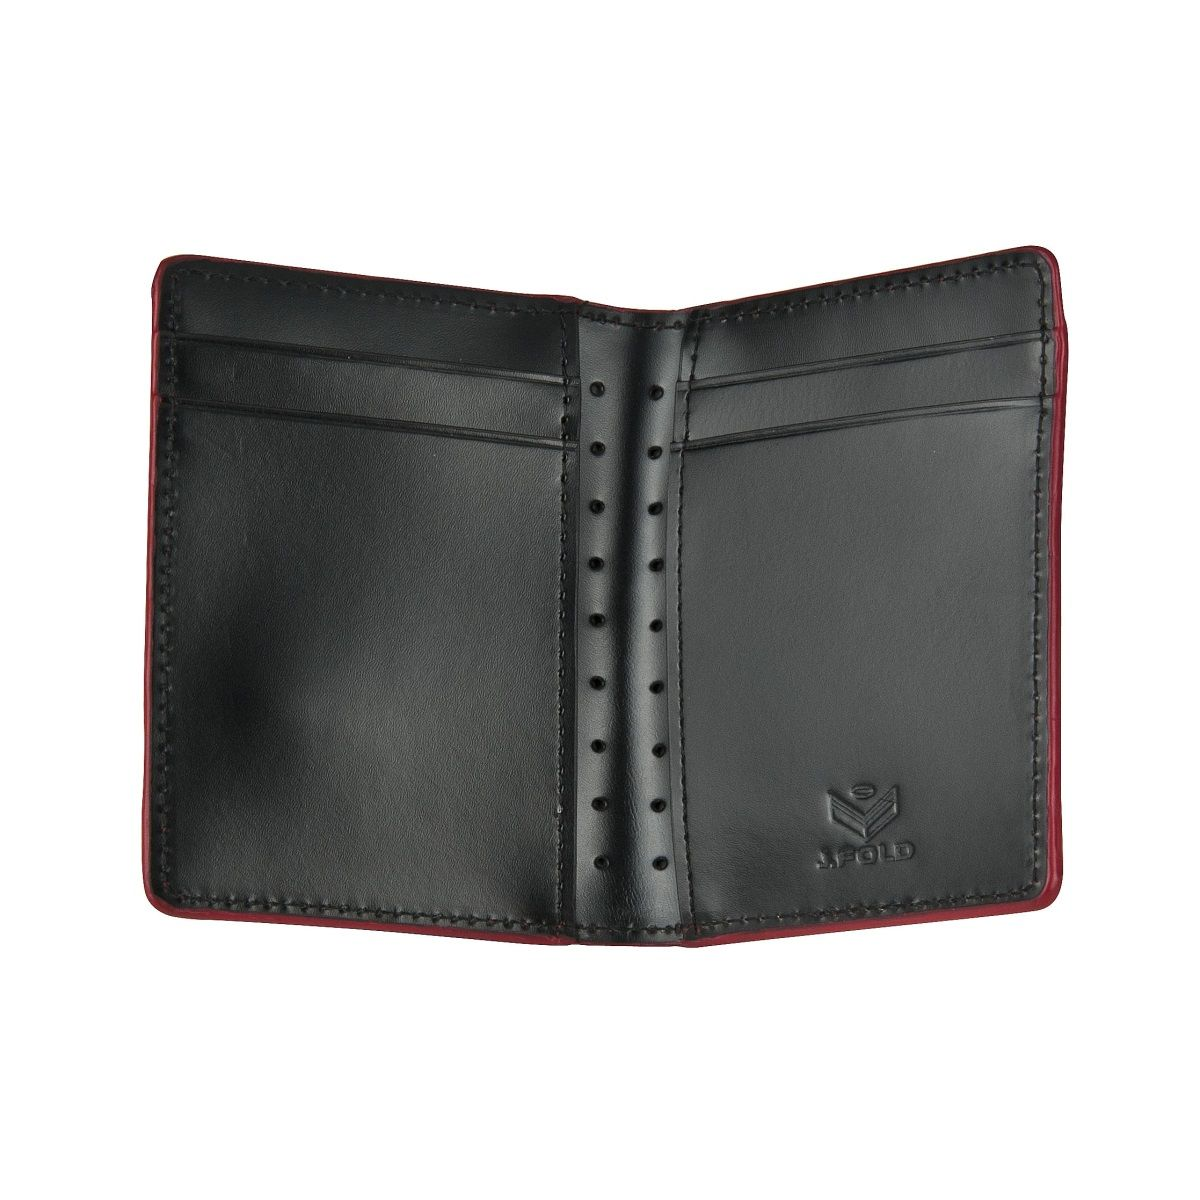 J.FOLD Folding Carrier Wallet - Black